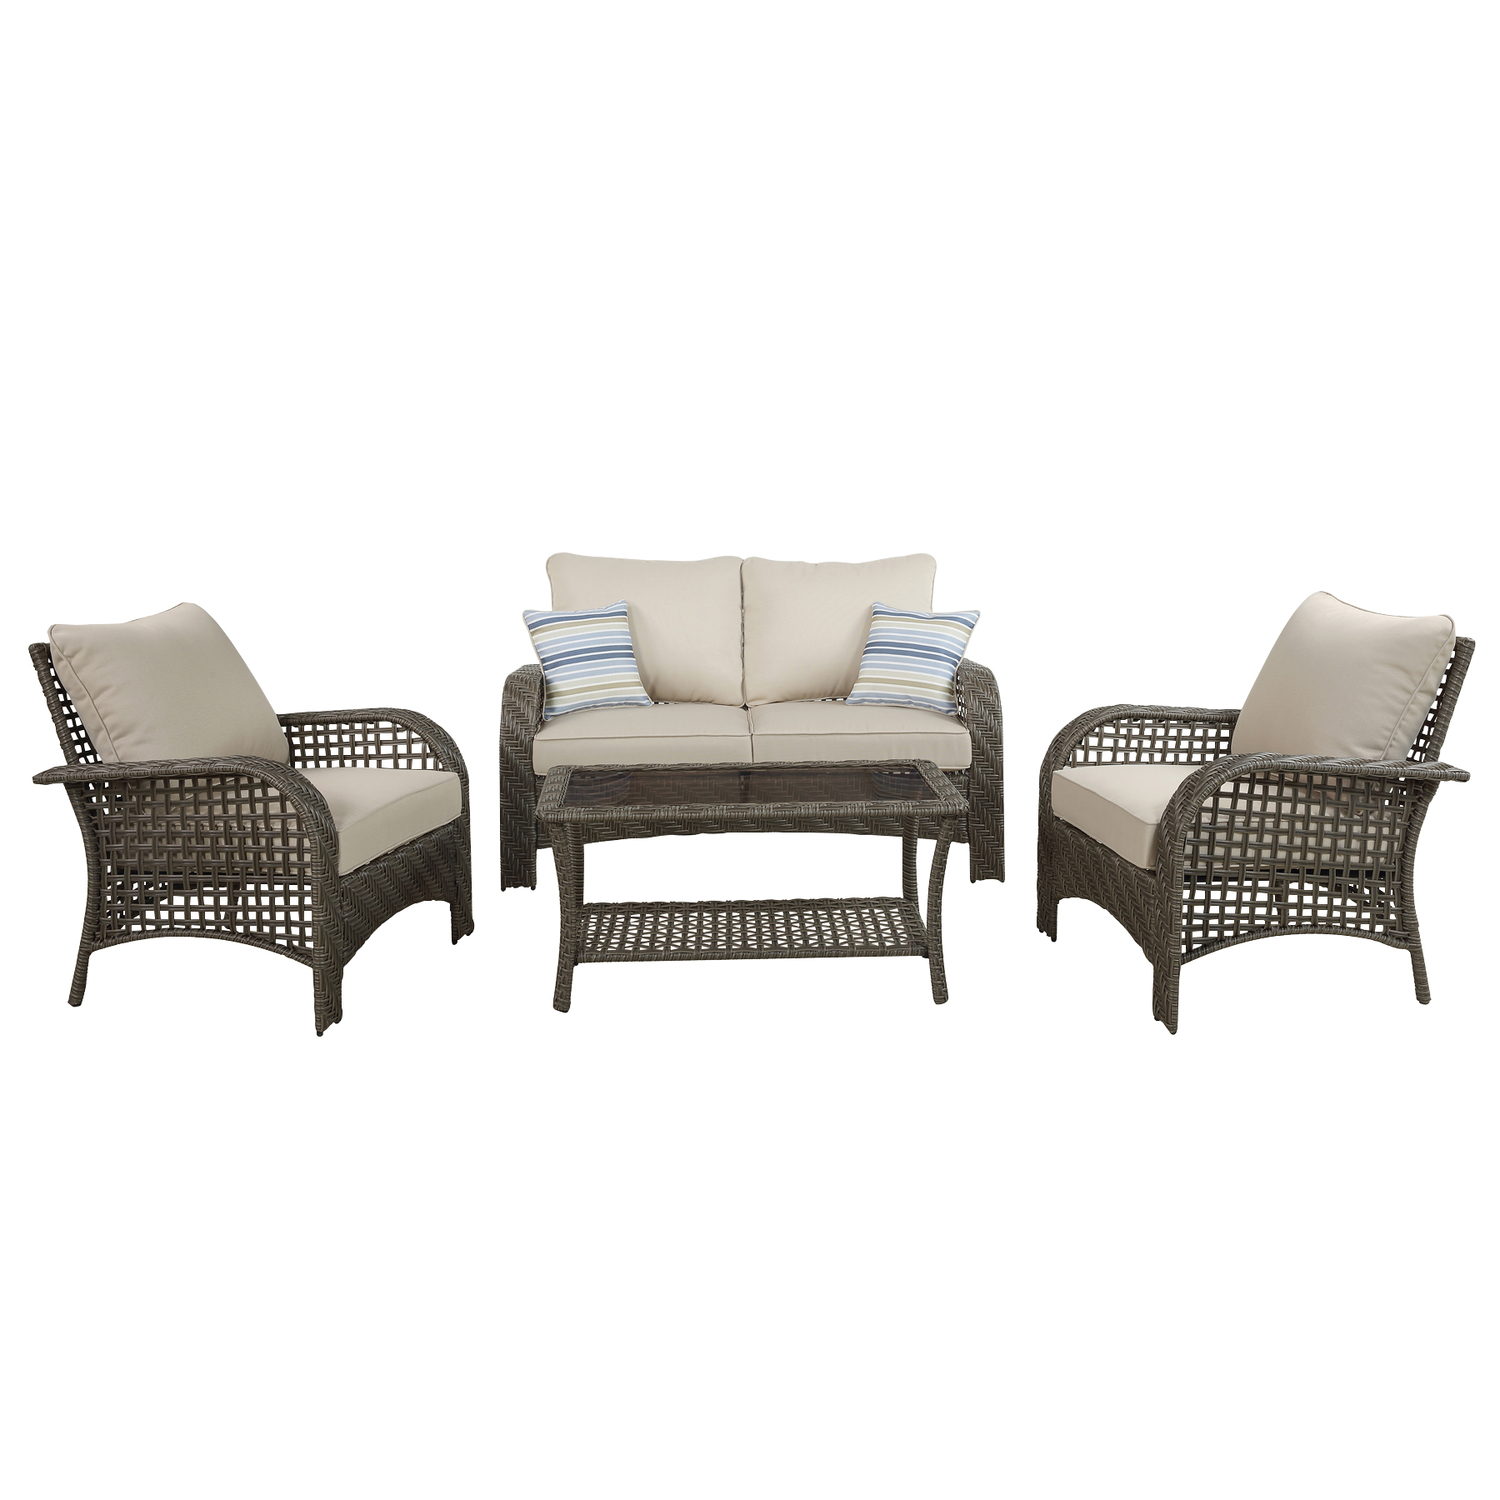 Living Accents Willow 4 pc. Gray Wicker Deep Seating Patio Set Beige